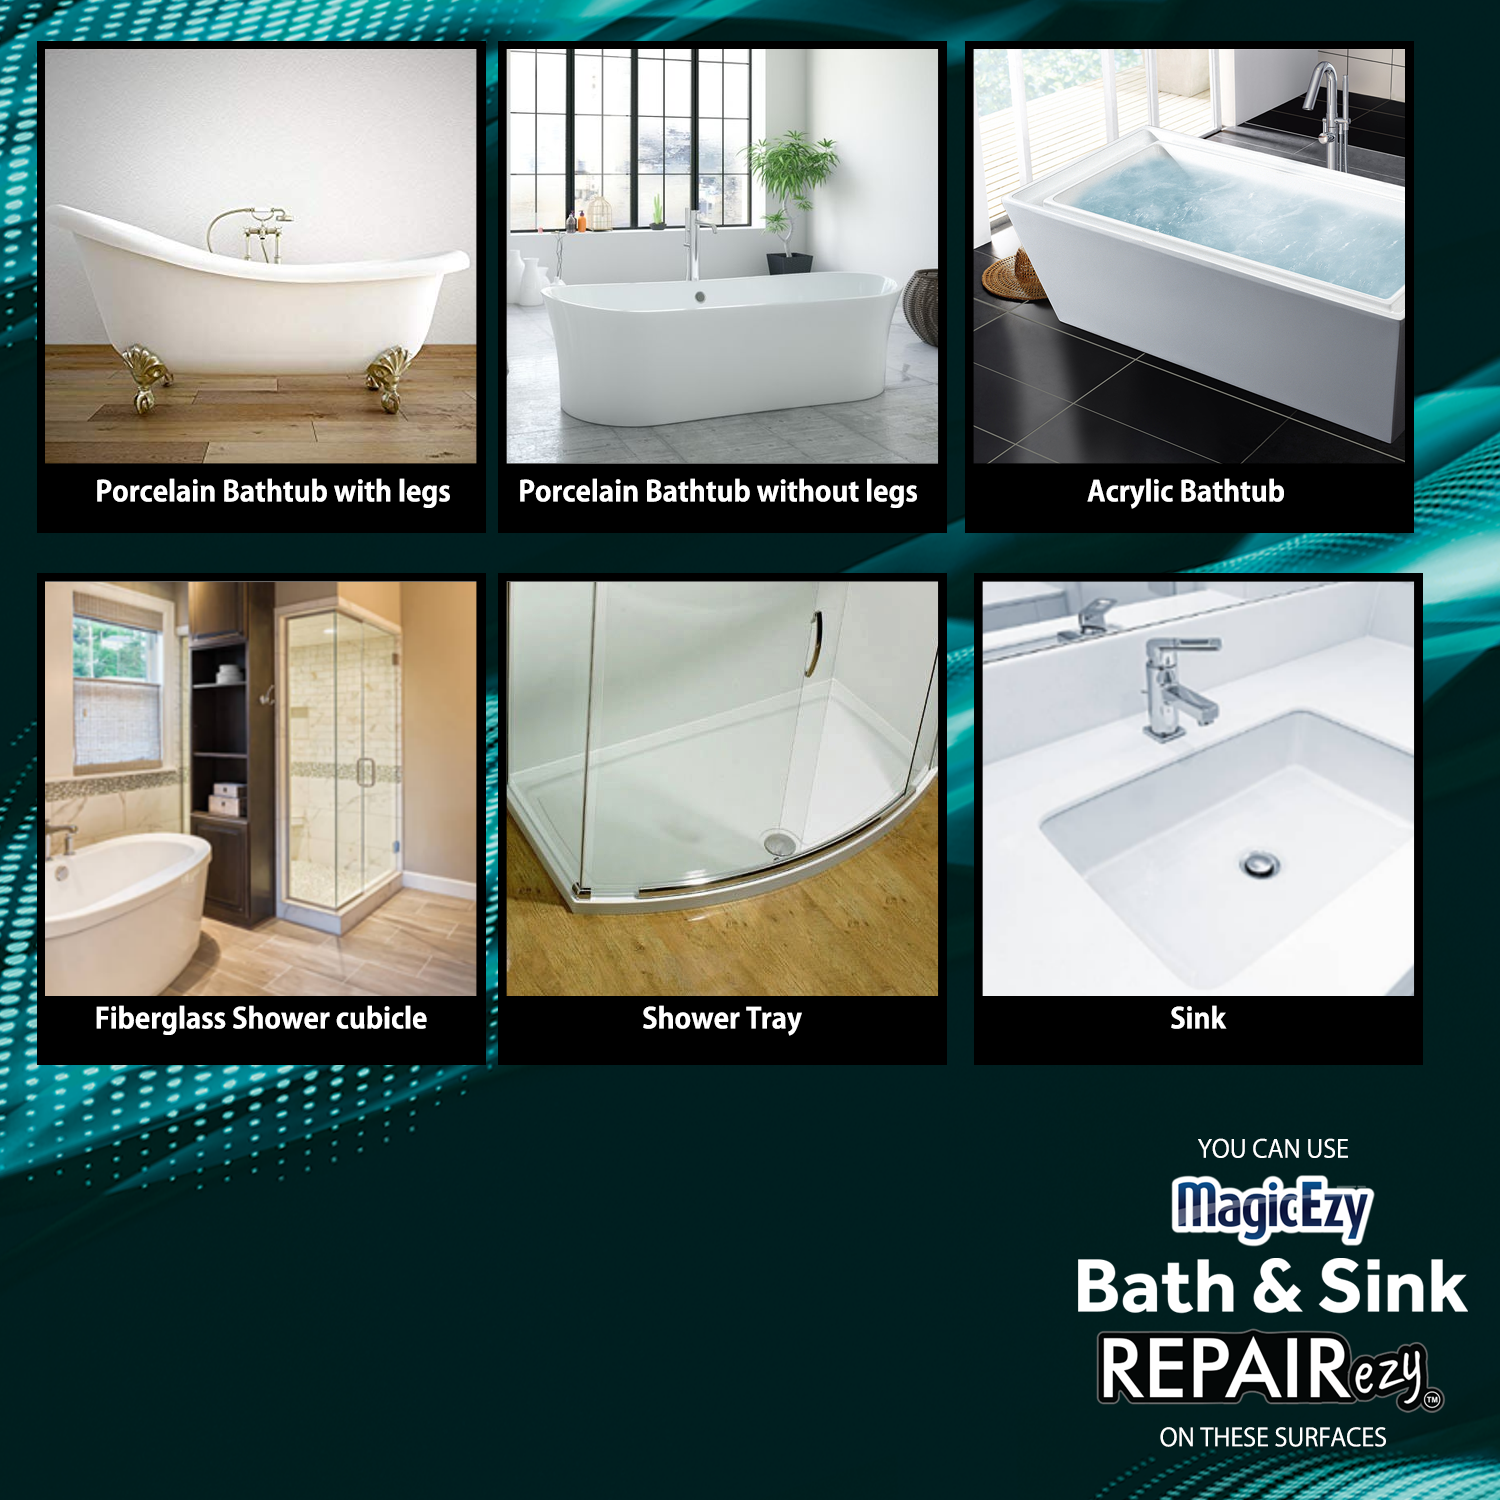 Fix Chips And Scratches On All These Surfaces Bath Sink Repairezy In 2020 Bathtub Repair Bathtub Repair Kit Bathtub